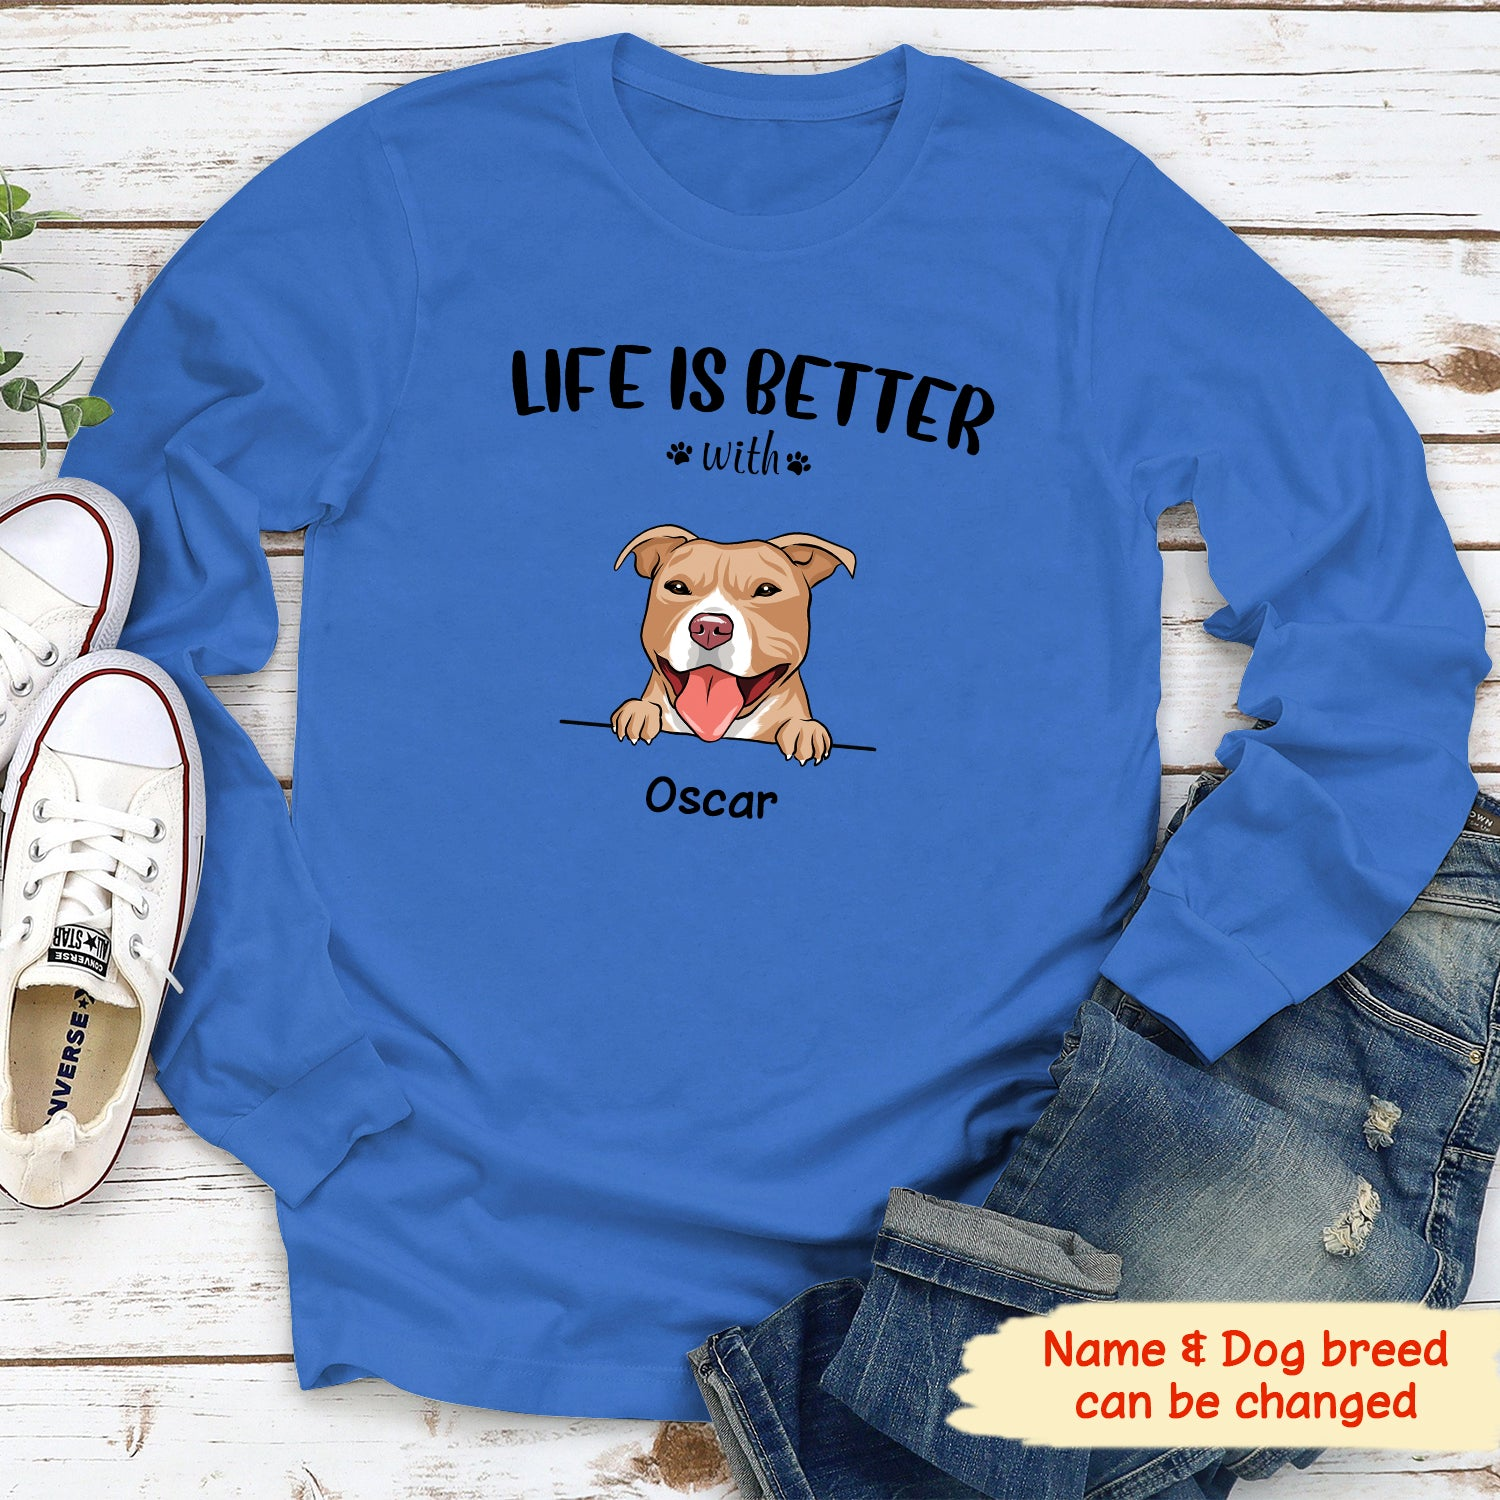 Life is better - Personalized custom classic long sleeve